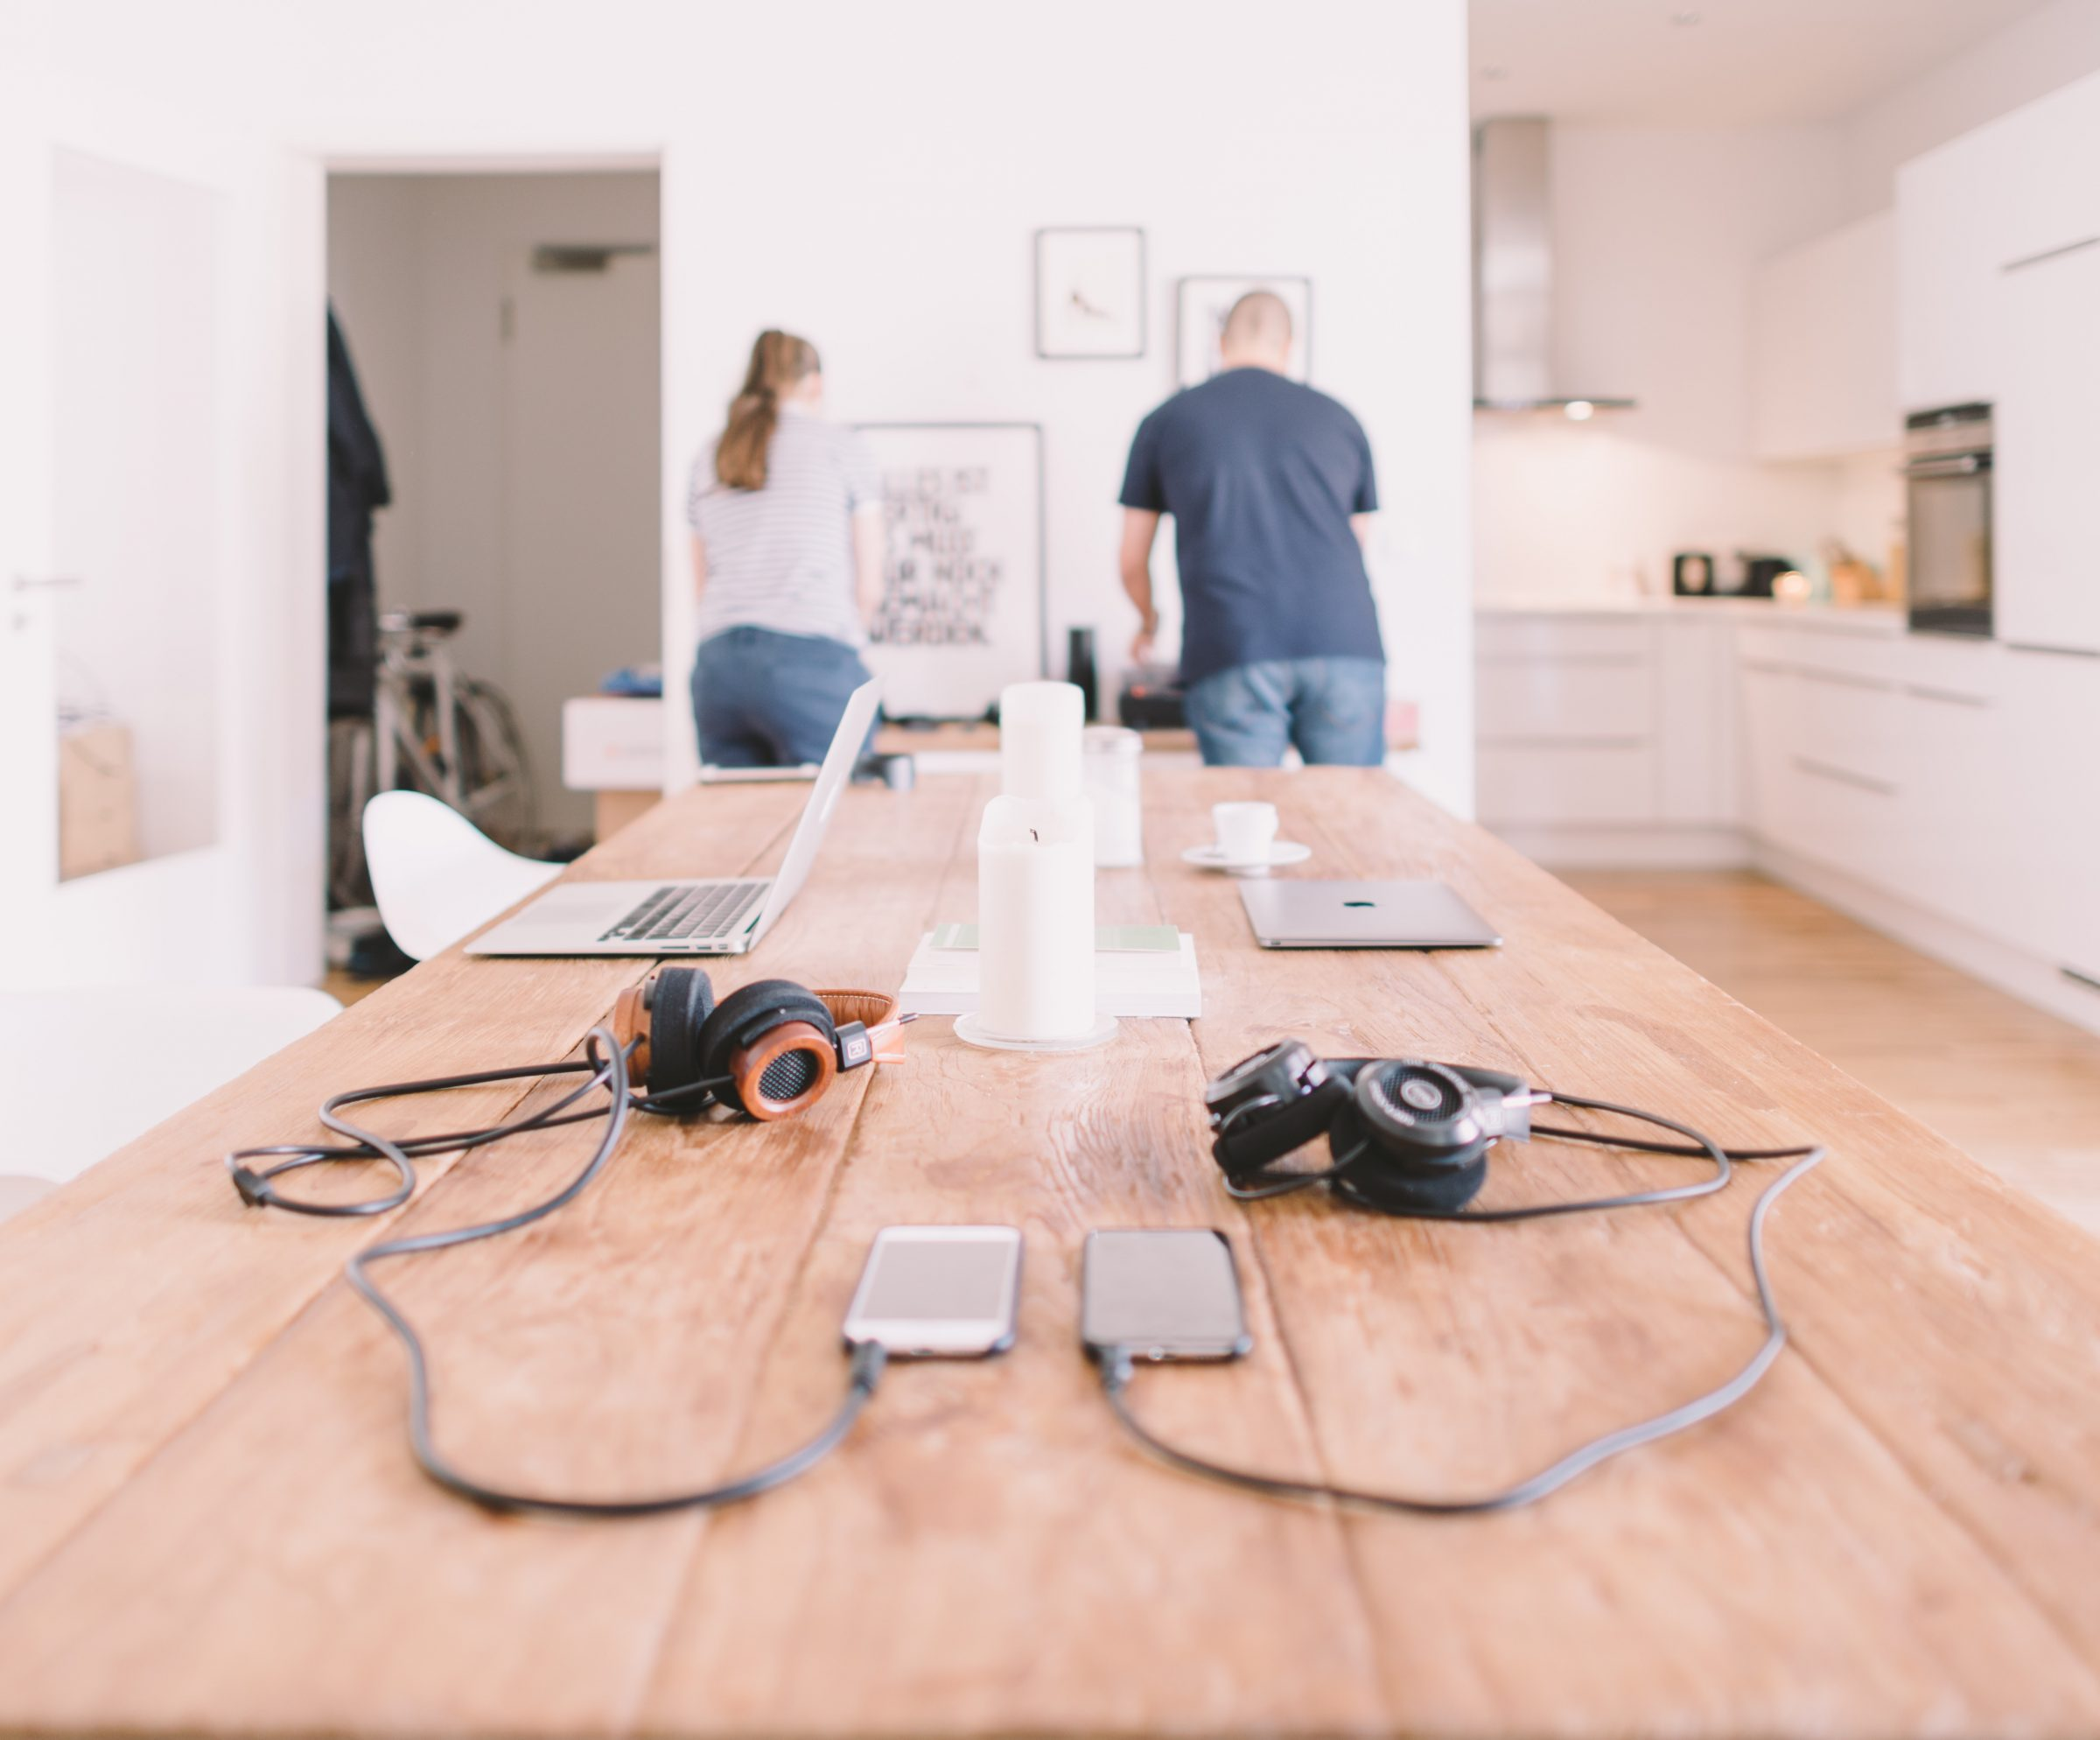 establishing a clear voice on social media platforms relevant to your ideal customers is key to successfully connecting with prospective tenants